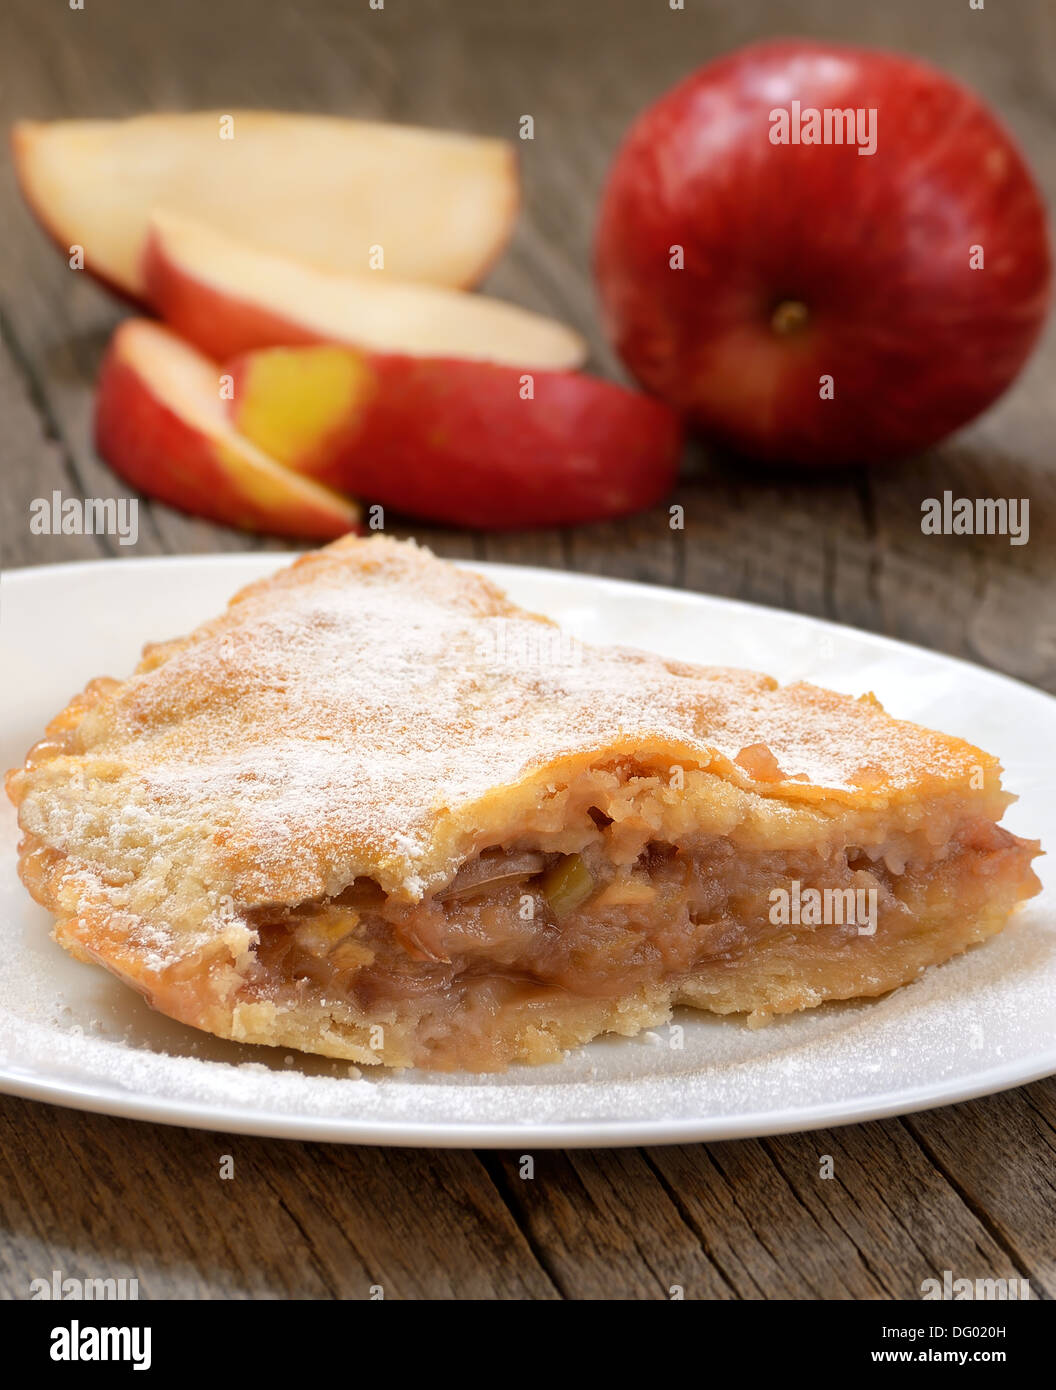 Apple pie on the white plate on wooden table - Stock Image